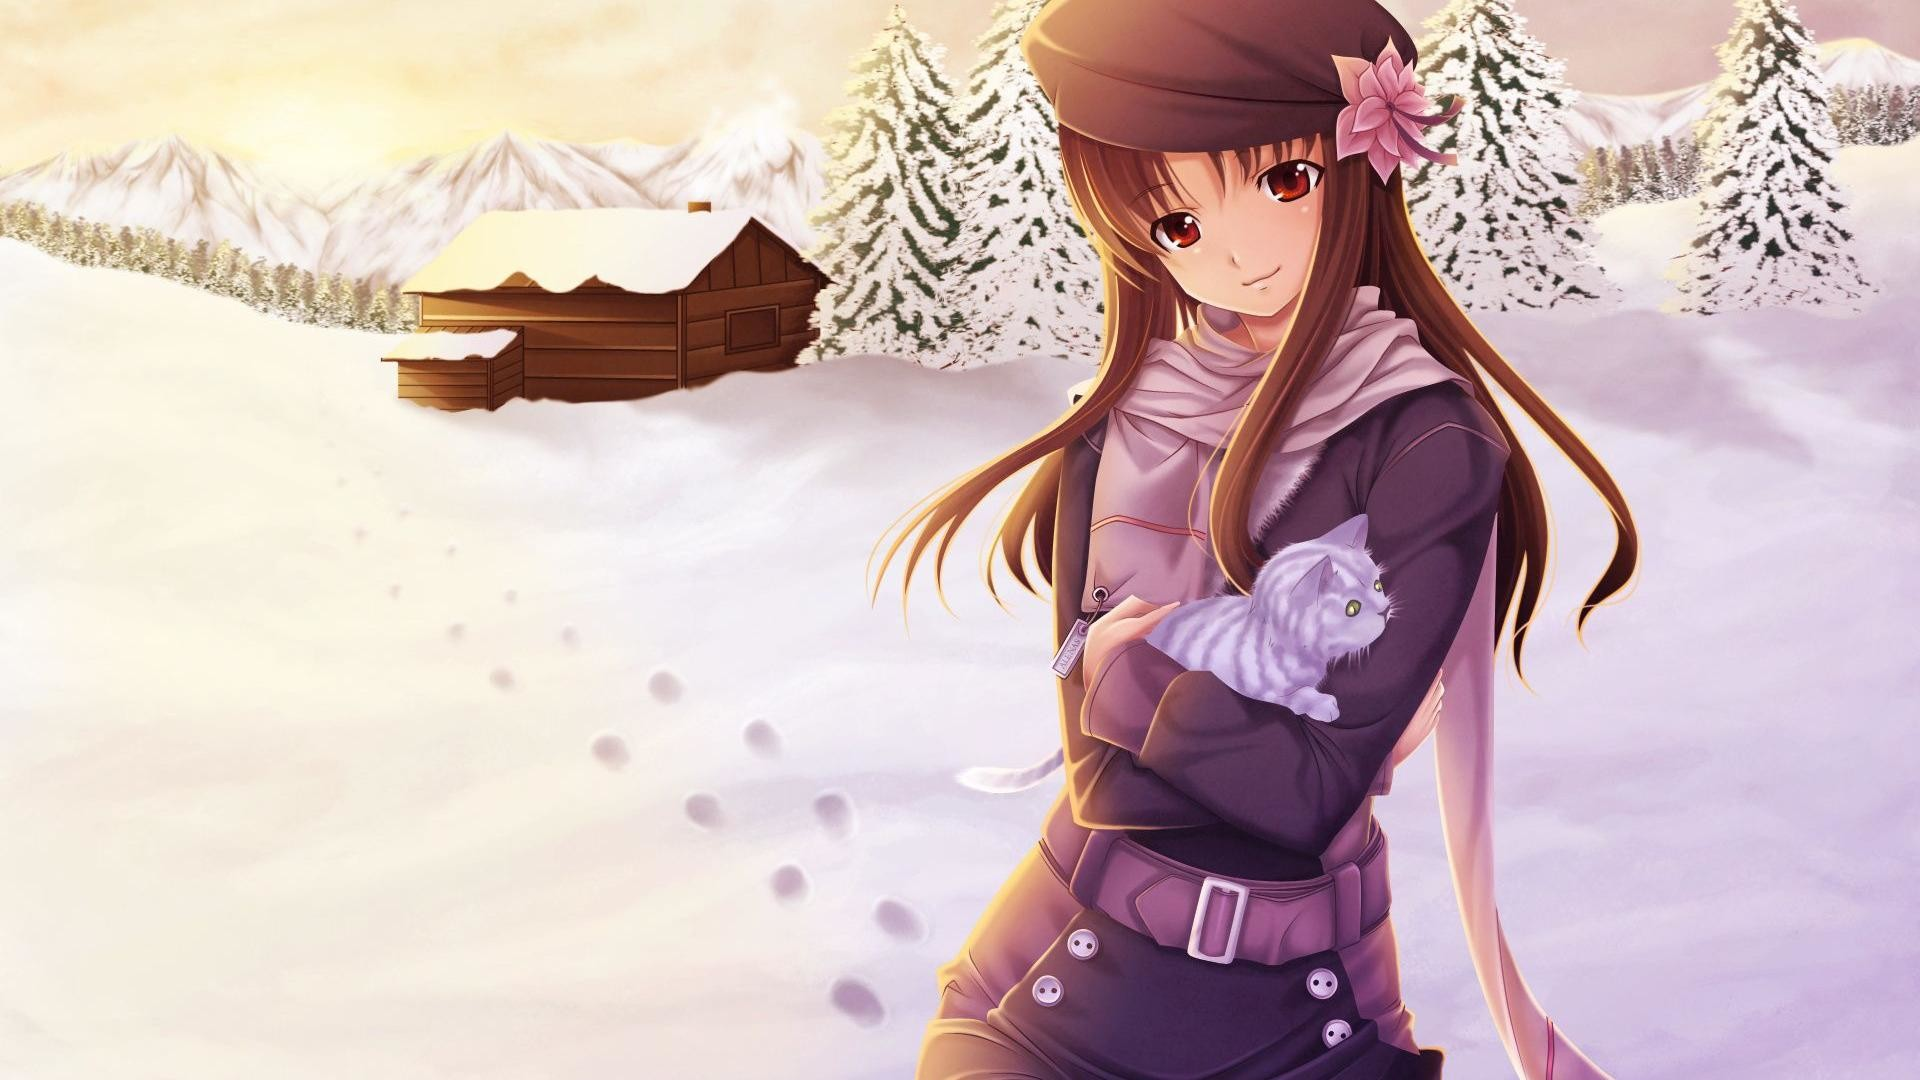 24 Anime Backgrounds, Wallpapers, Images, Pictures | Design .